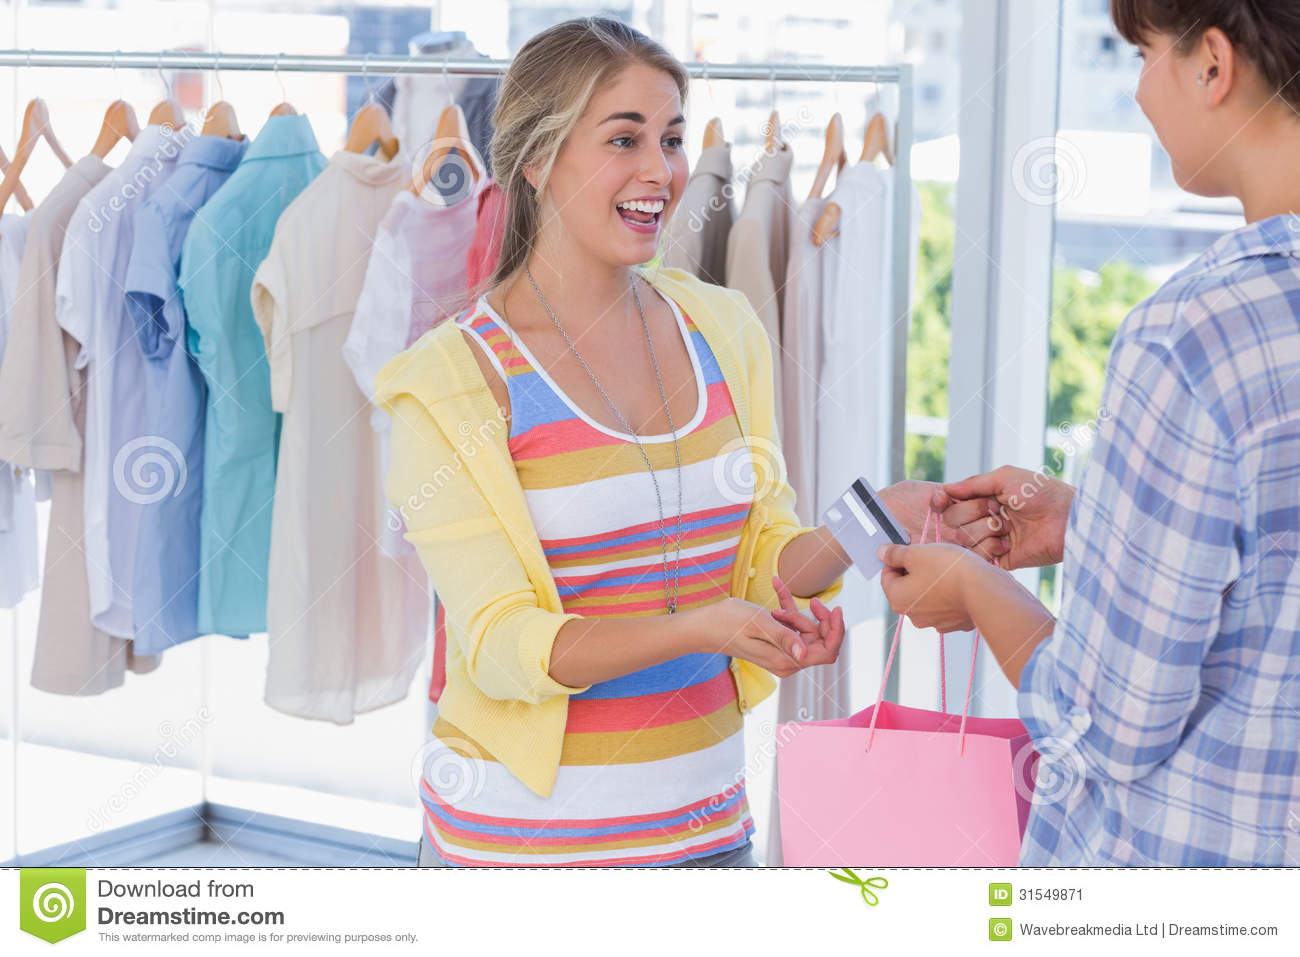 Clothing stores credit cards. Clothes stores